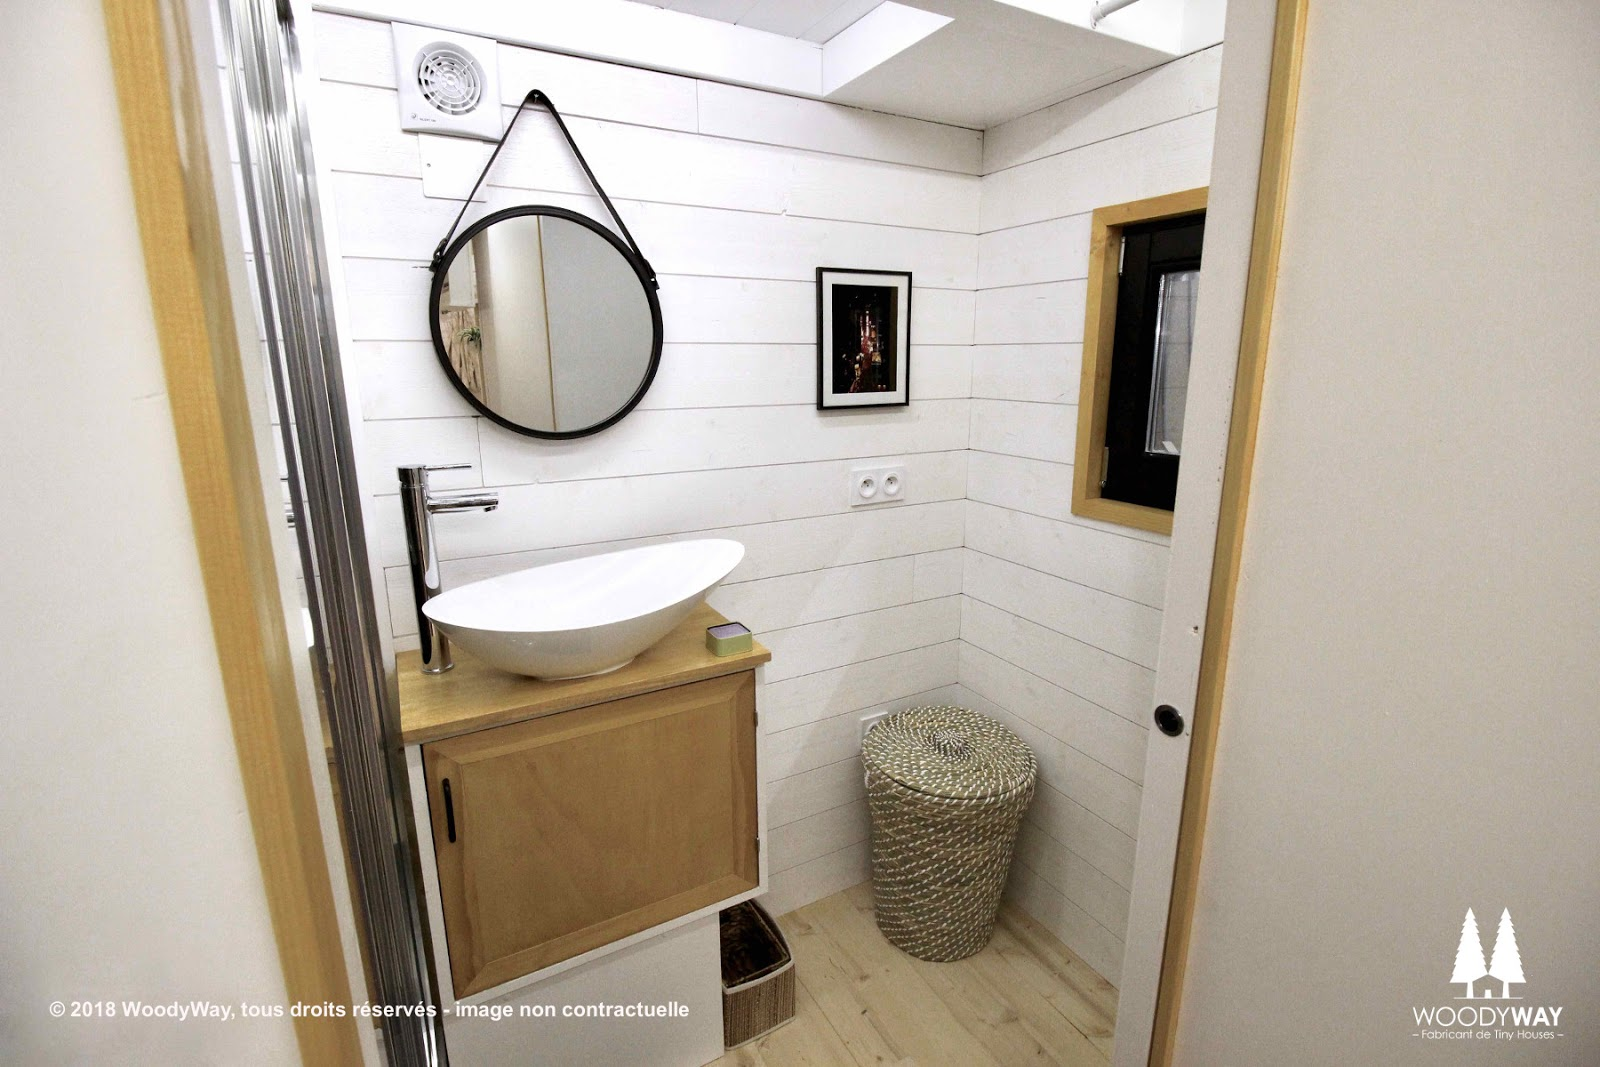 TINY HOUSE TOWN: The Athena From Woody Way